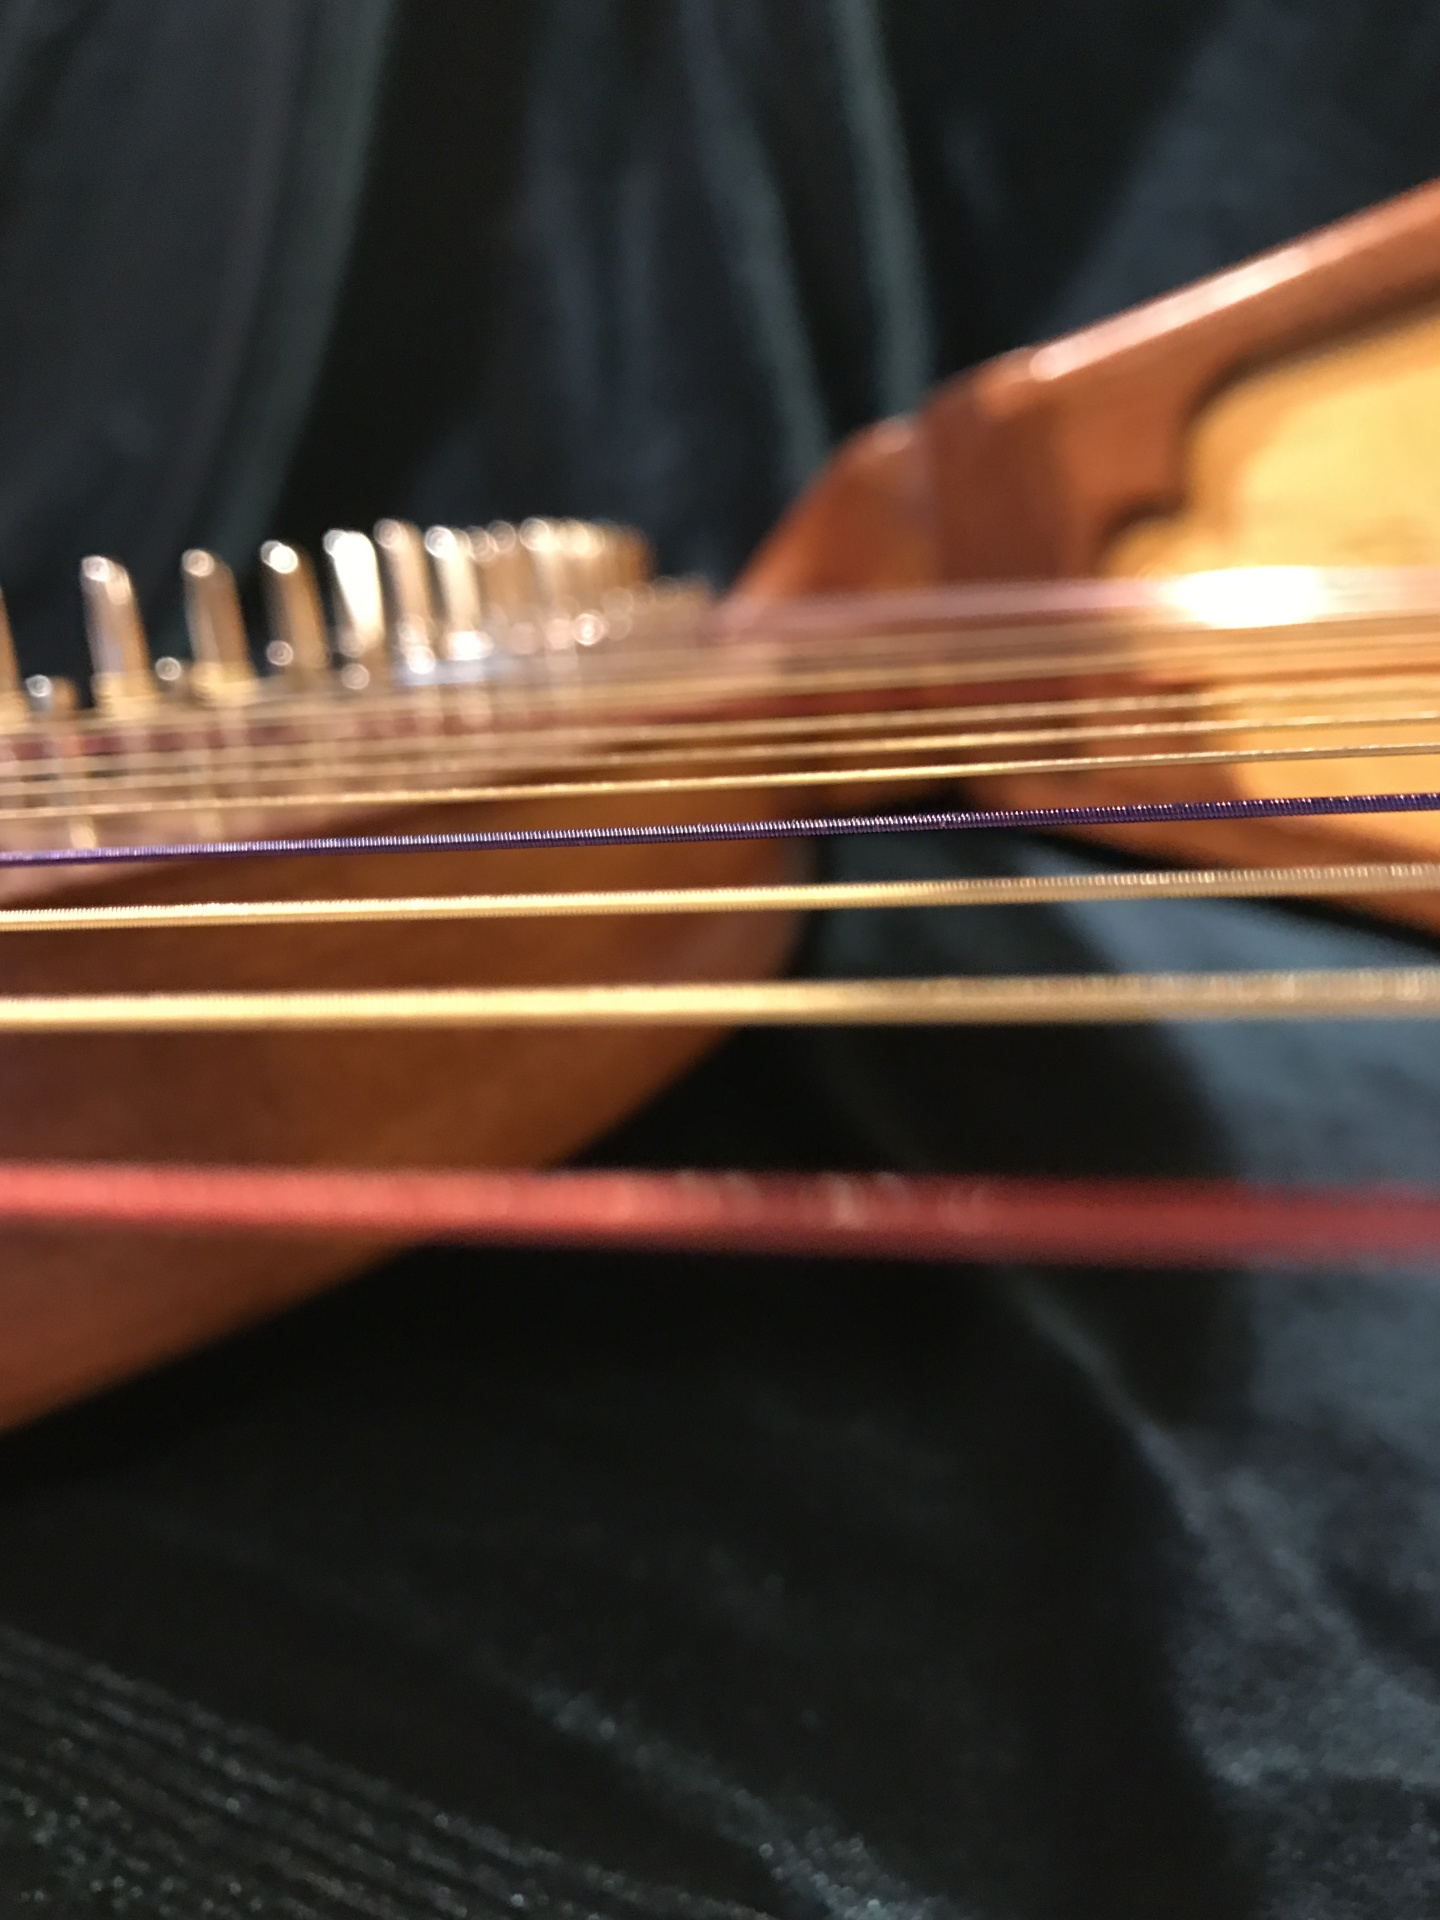 Harp stringing & tuning